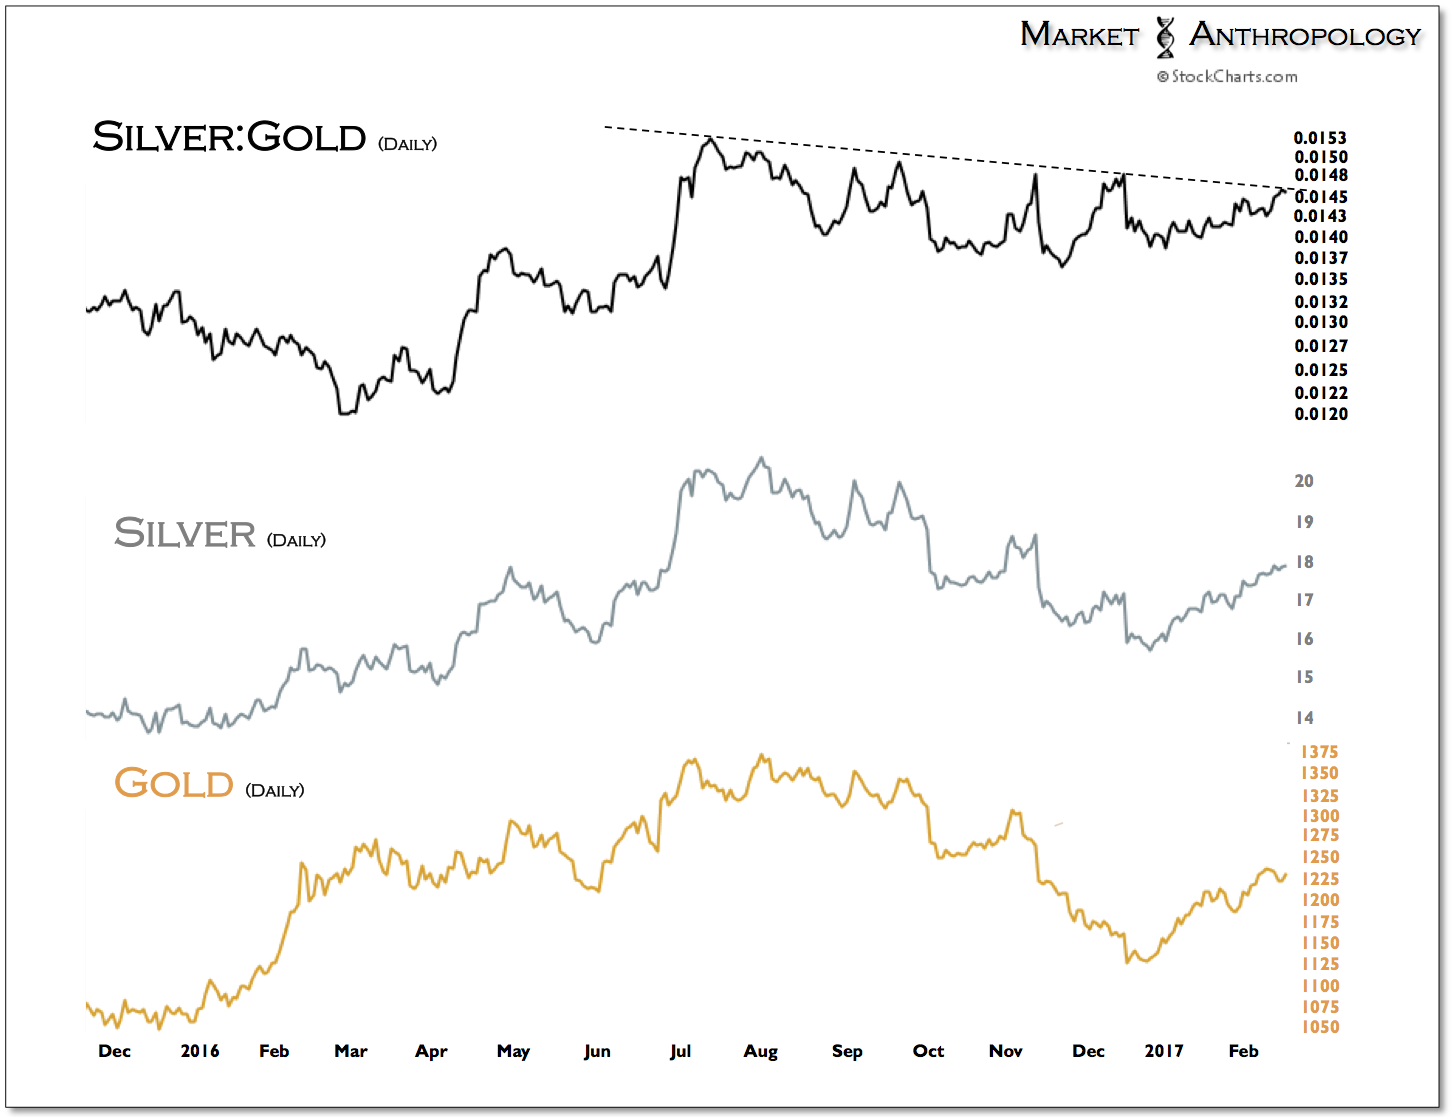 Daily Silver:Gold vs Silver vs Gold